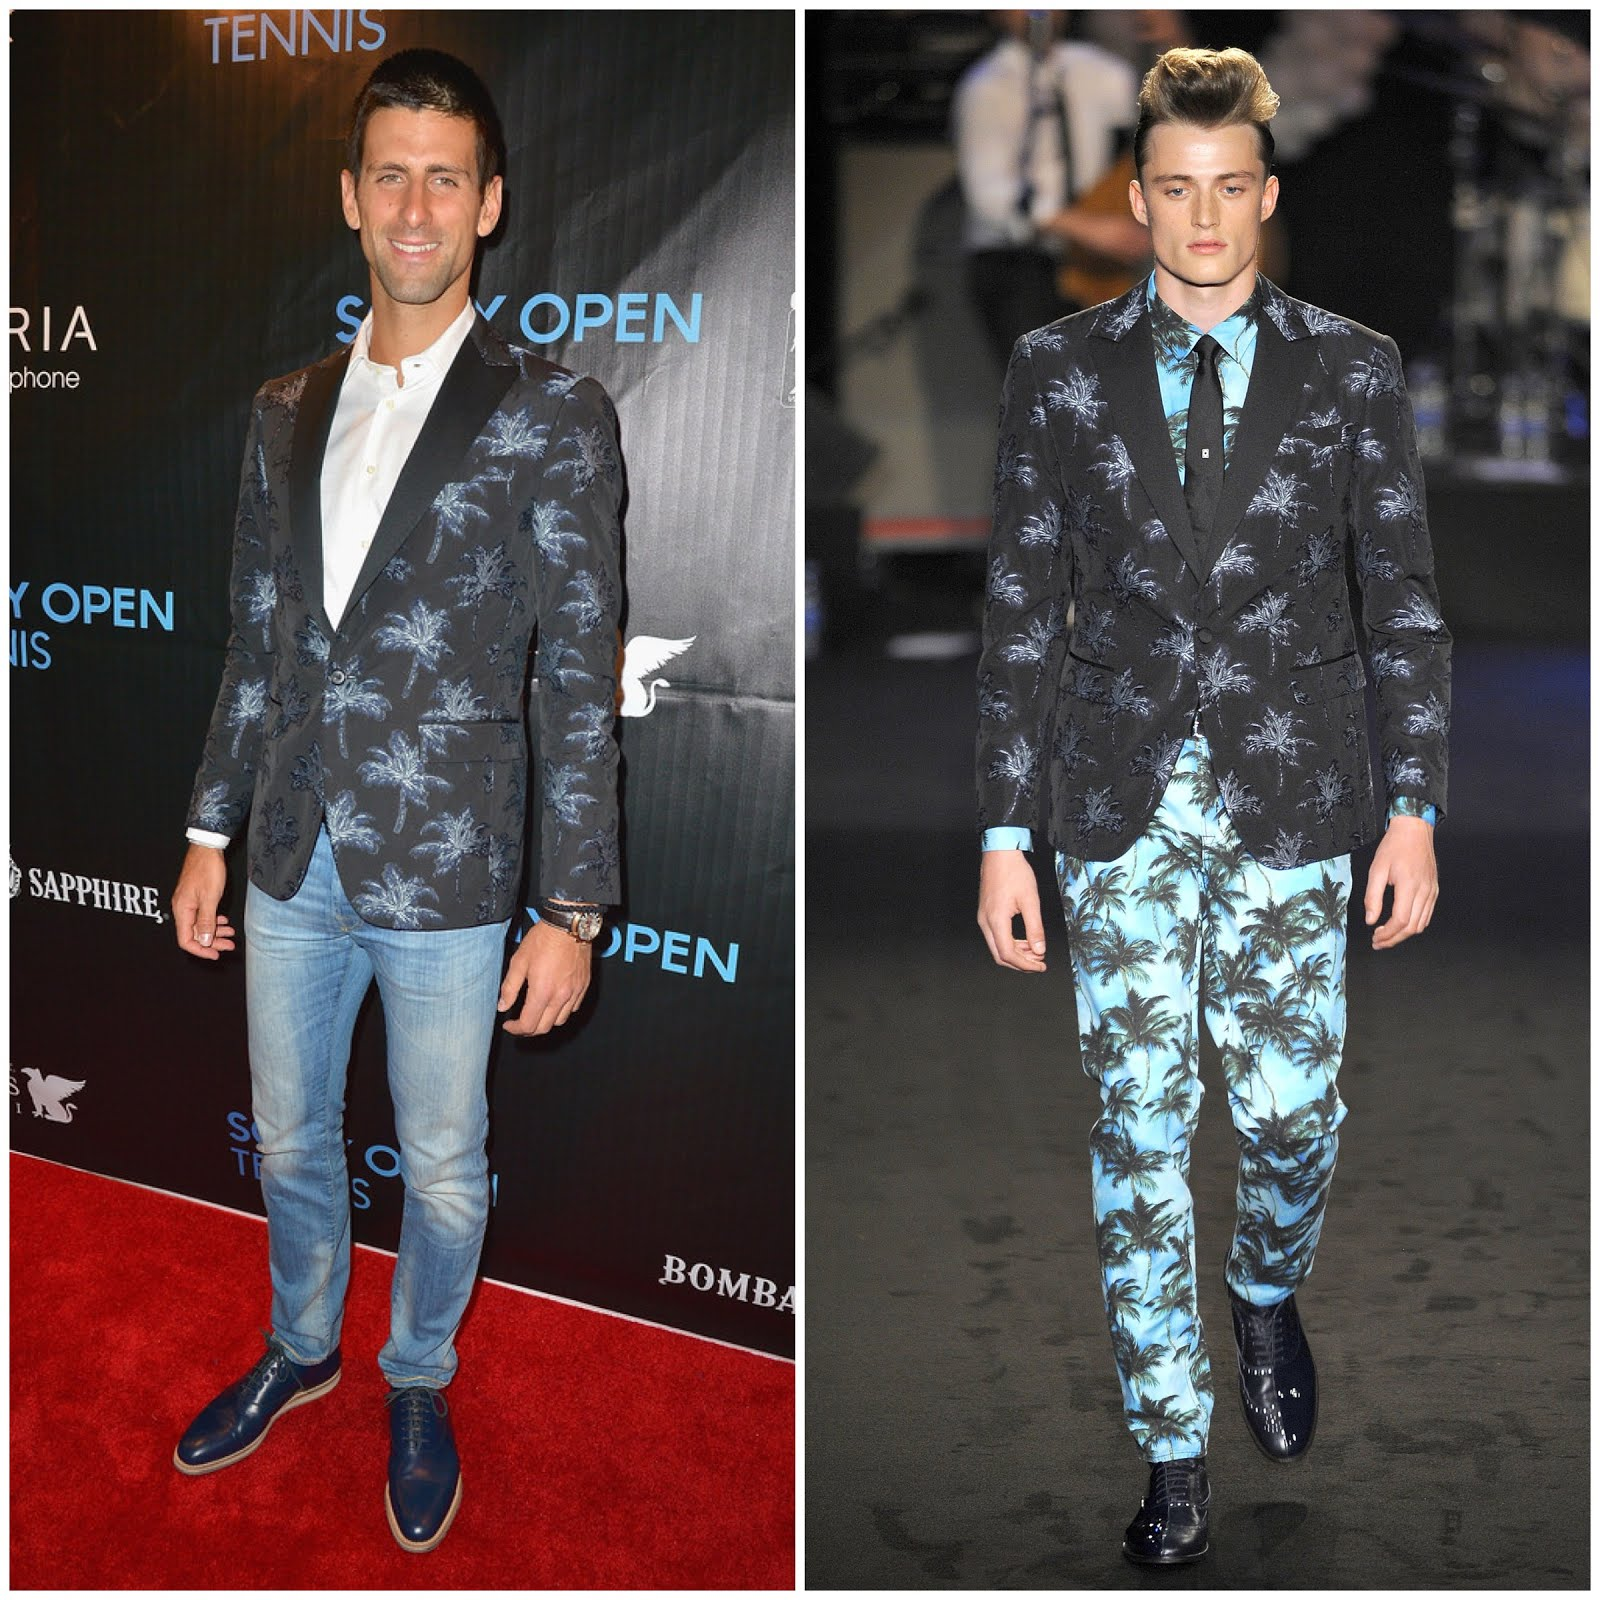 00O00 Menswear Blog Novak Djokovic in Moschino - Sony Open Player Party 2013 at JW Marriott Marquis on March 19, 2013 in Miami, Florida